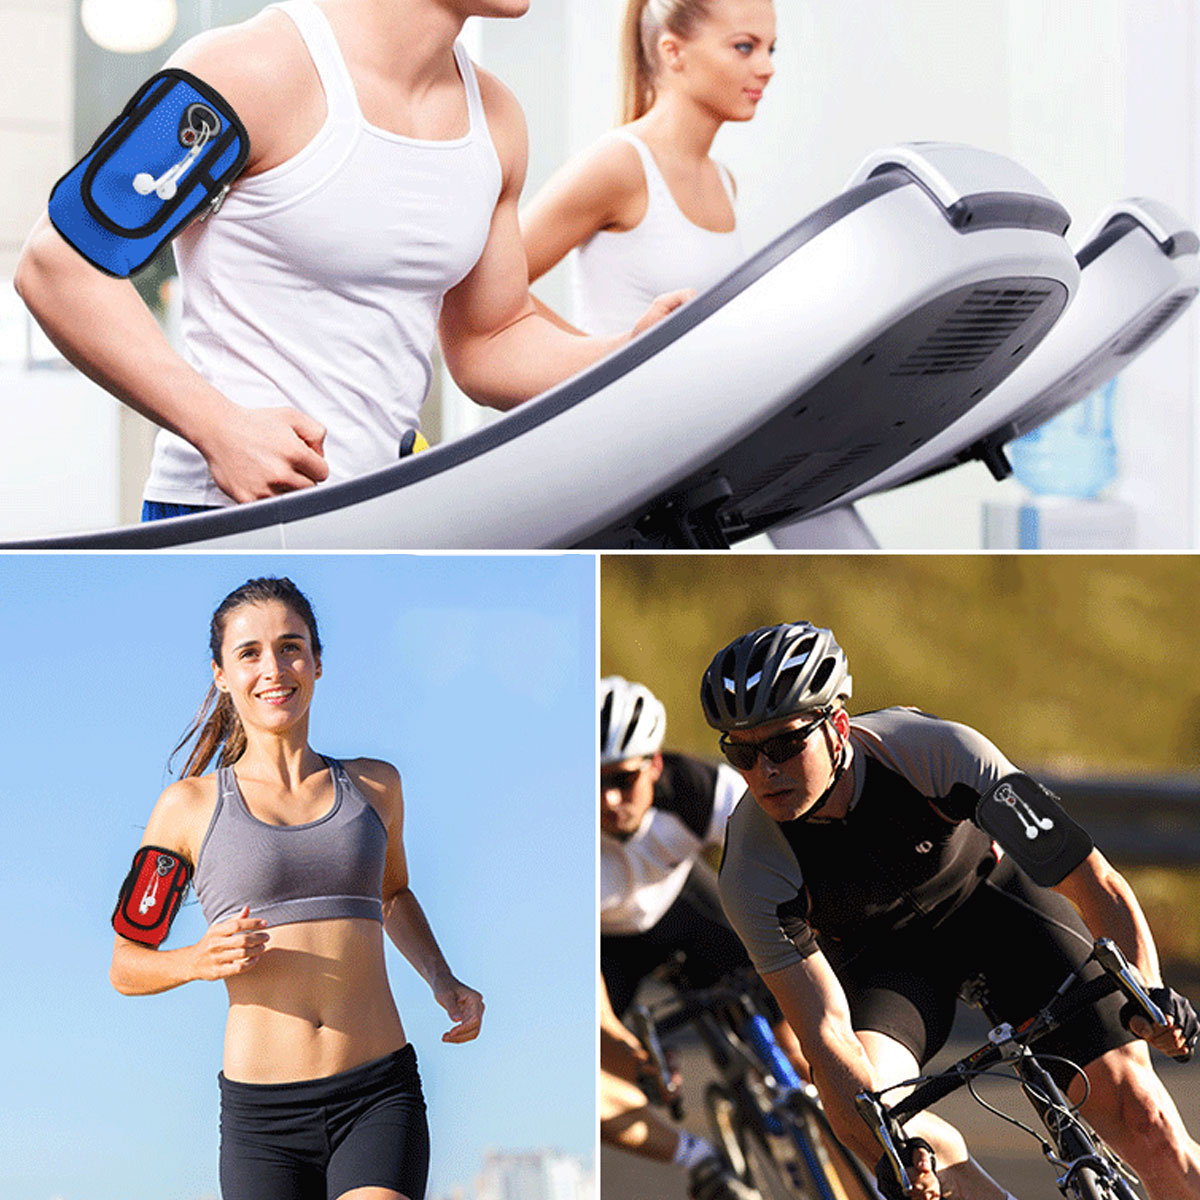 Bakeey Universal Waterproof Fabric Mobile Phone Armband Outdoor Gym Sports Running Jogging Wrist Arm Bag for Mobile Phone below 5.5 inch